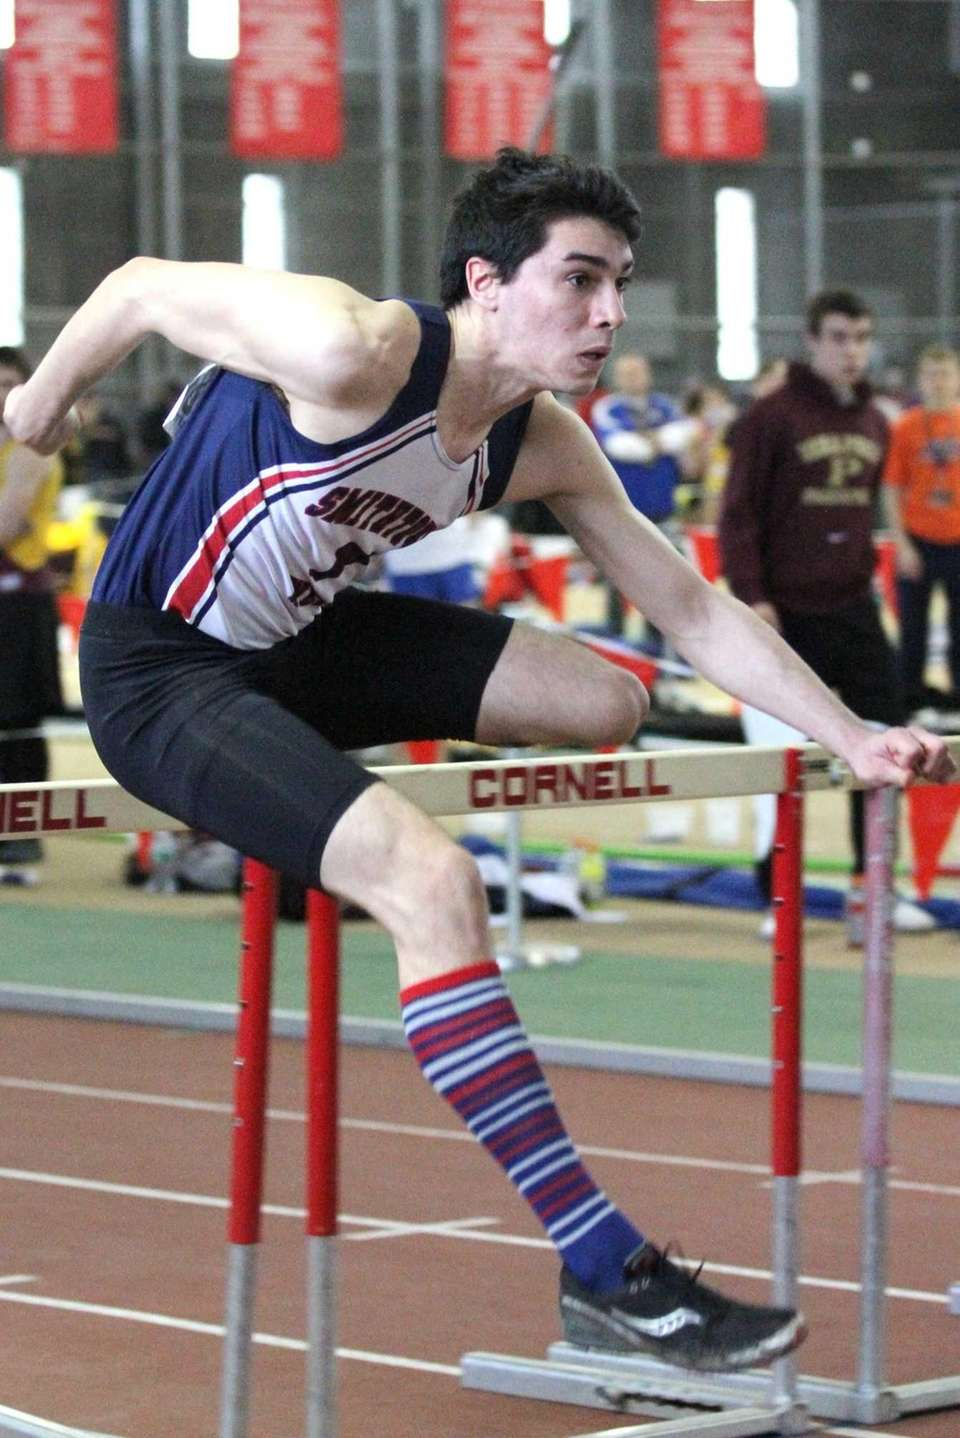 Smithtown West's Devin Mirenda competes in the 55-meter